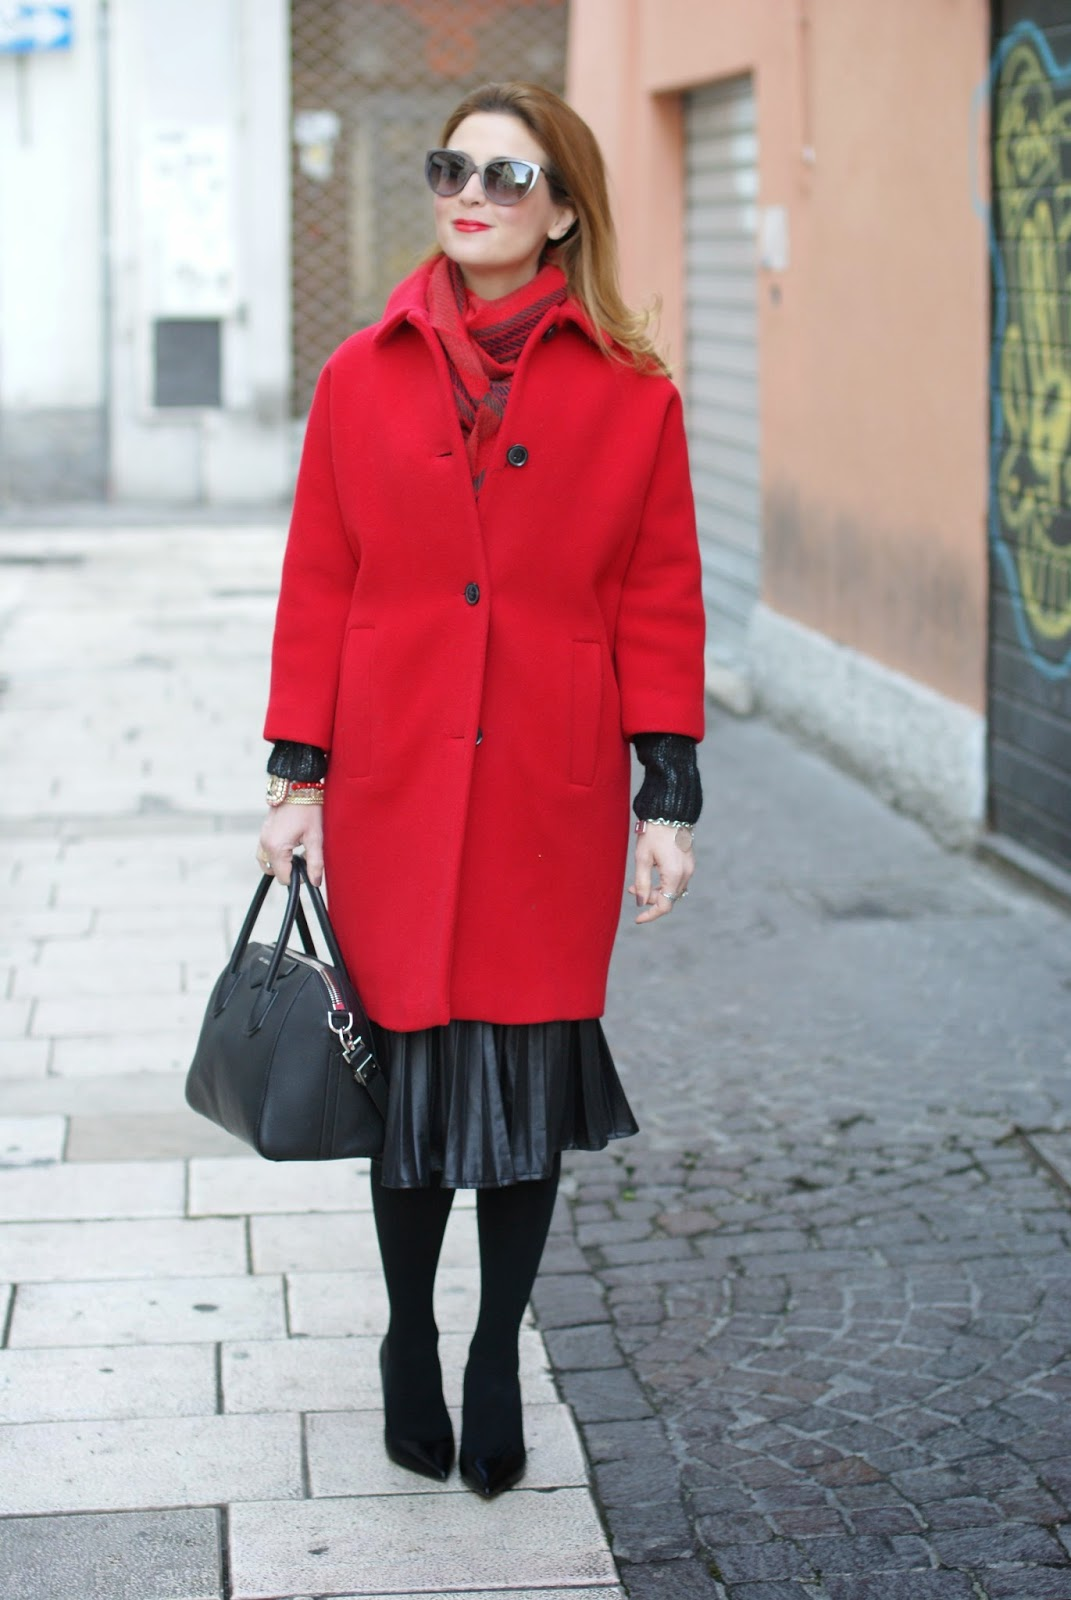 red Kiomi coat, Baracuta scarf, Le Silla pumps, Fashion and Cookies, fashion blogger